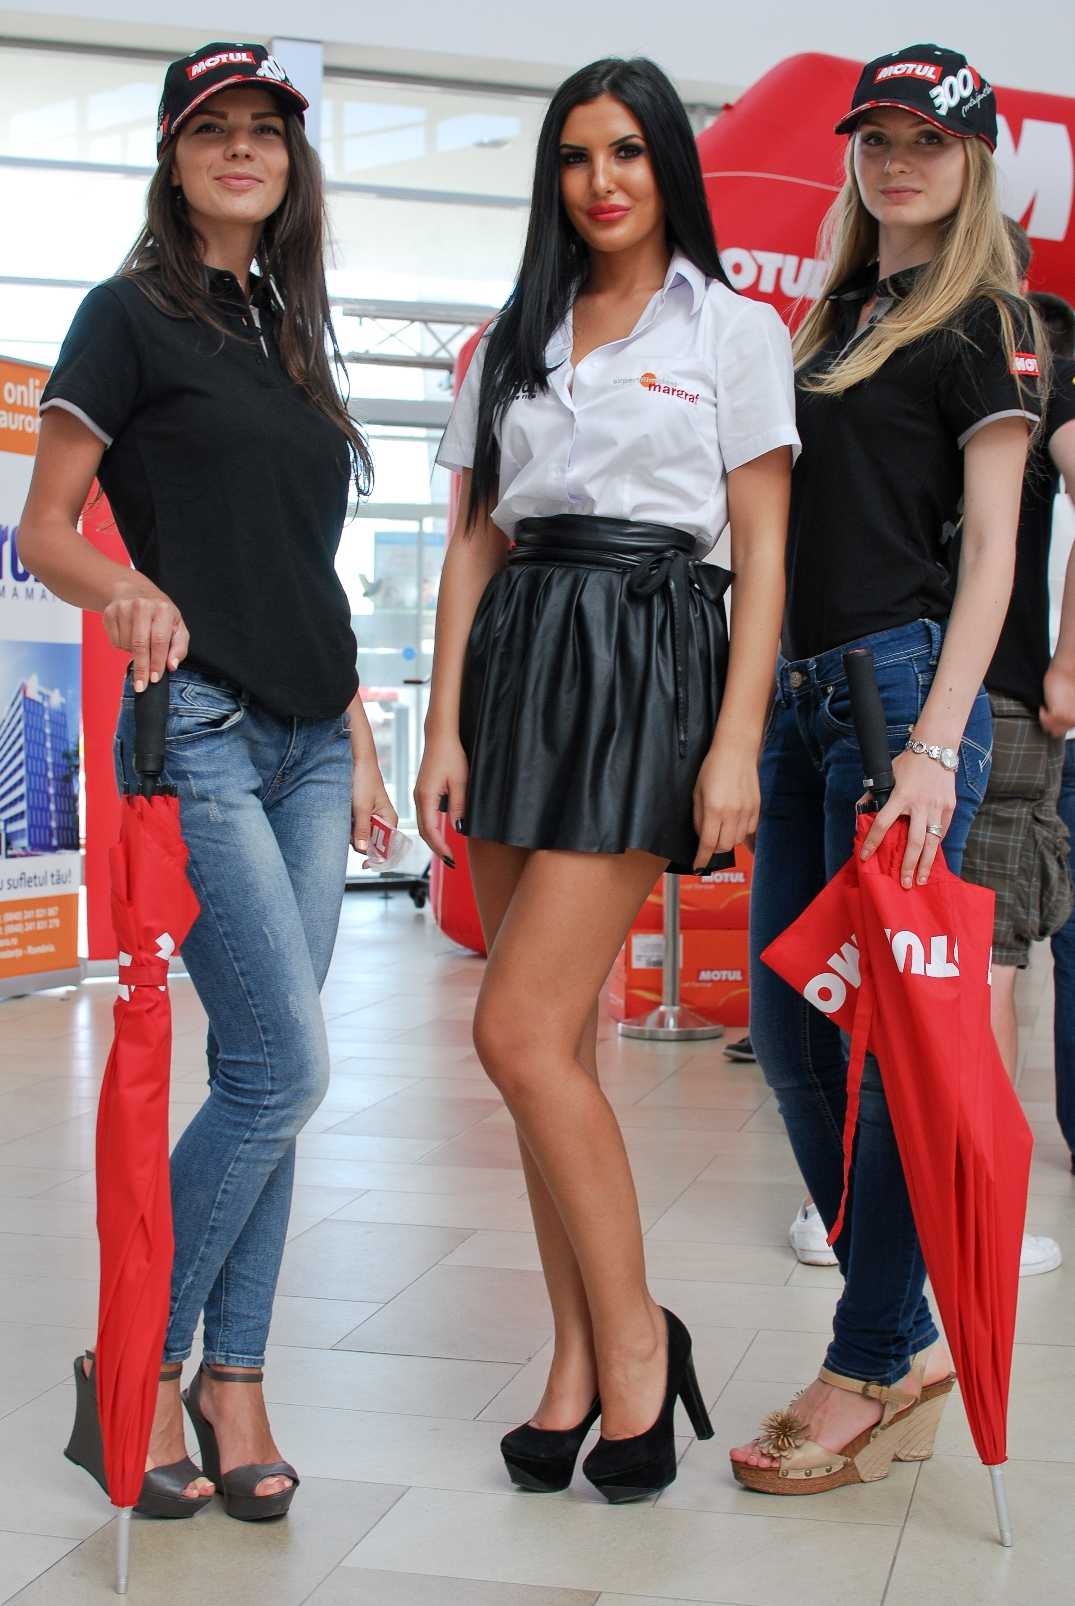 Hostess+Constanta-+Motul+2013+(6).JPG